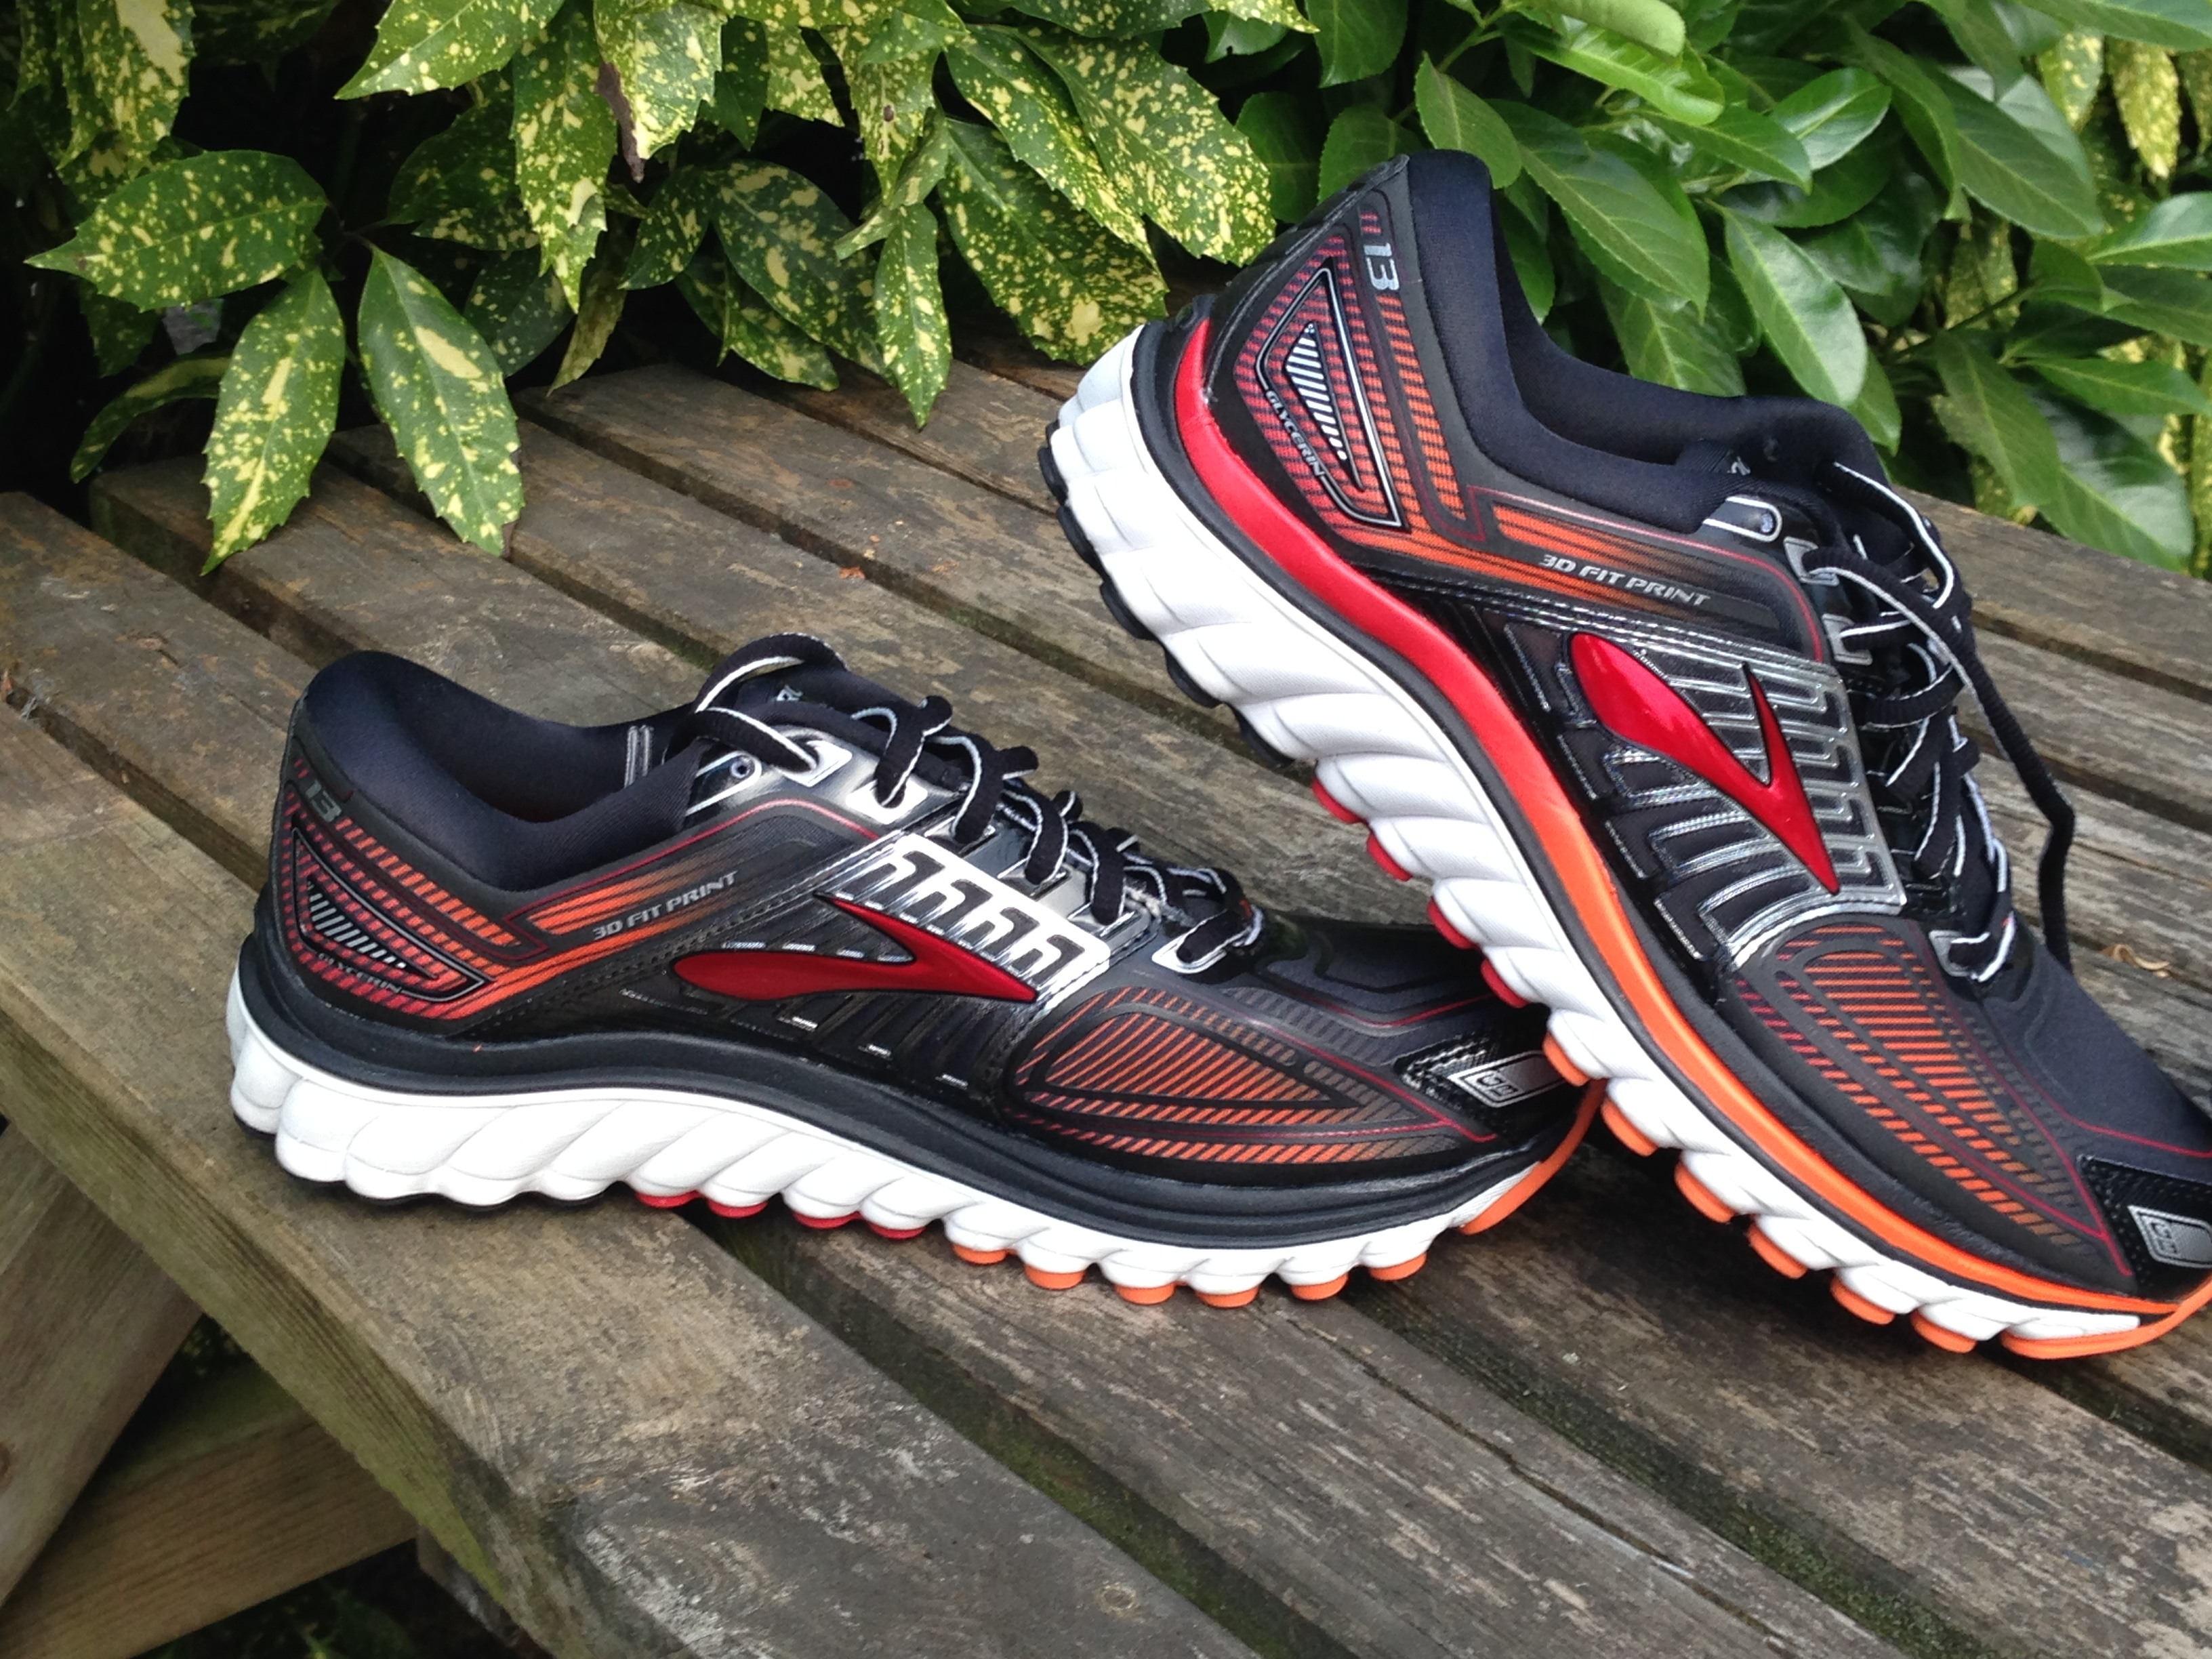 Test chaussure running route et chemin